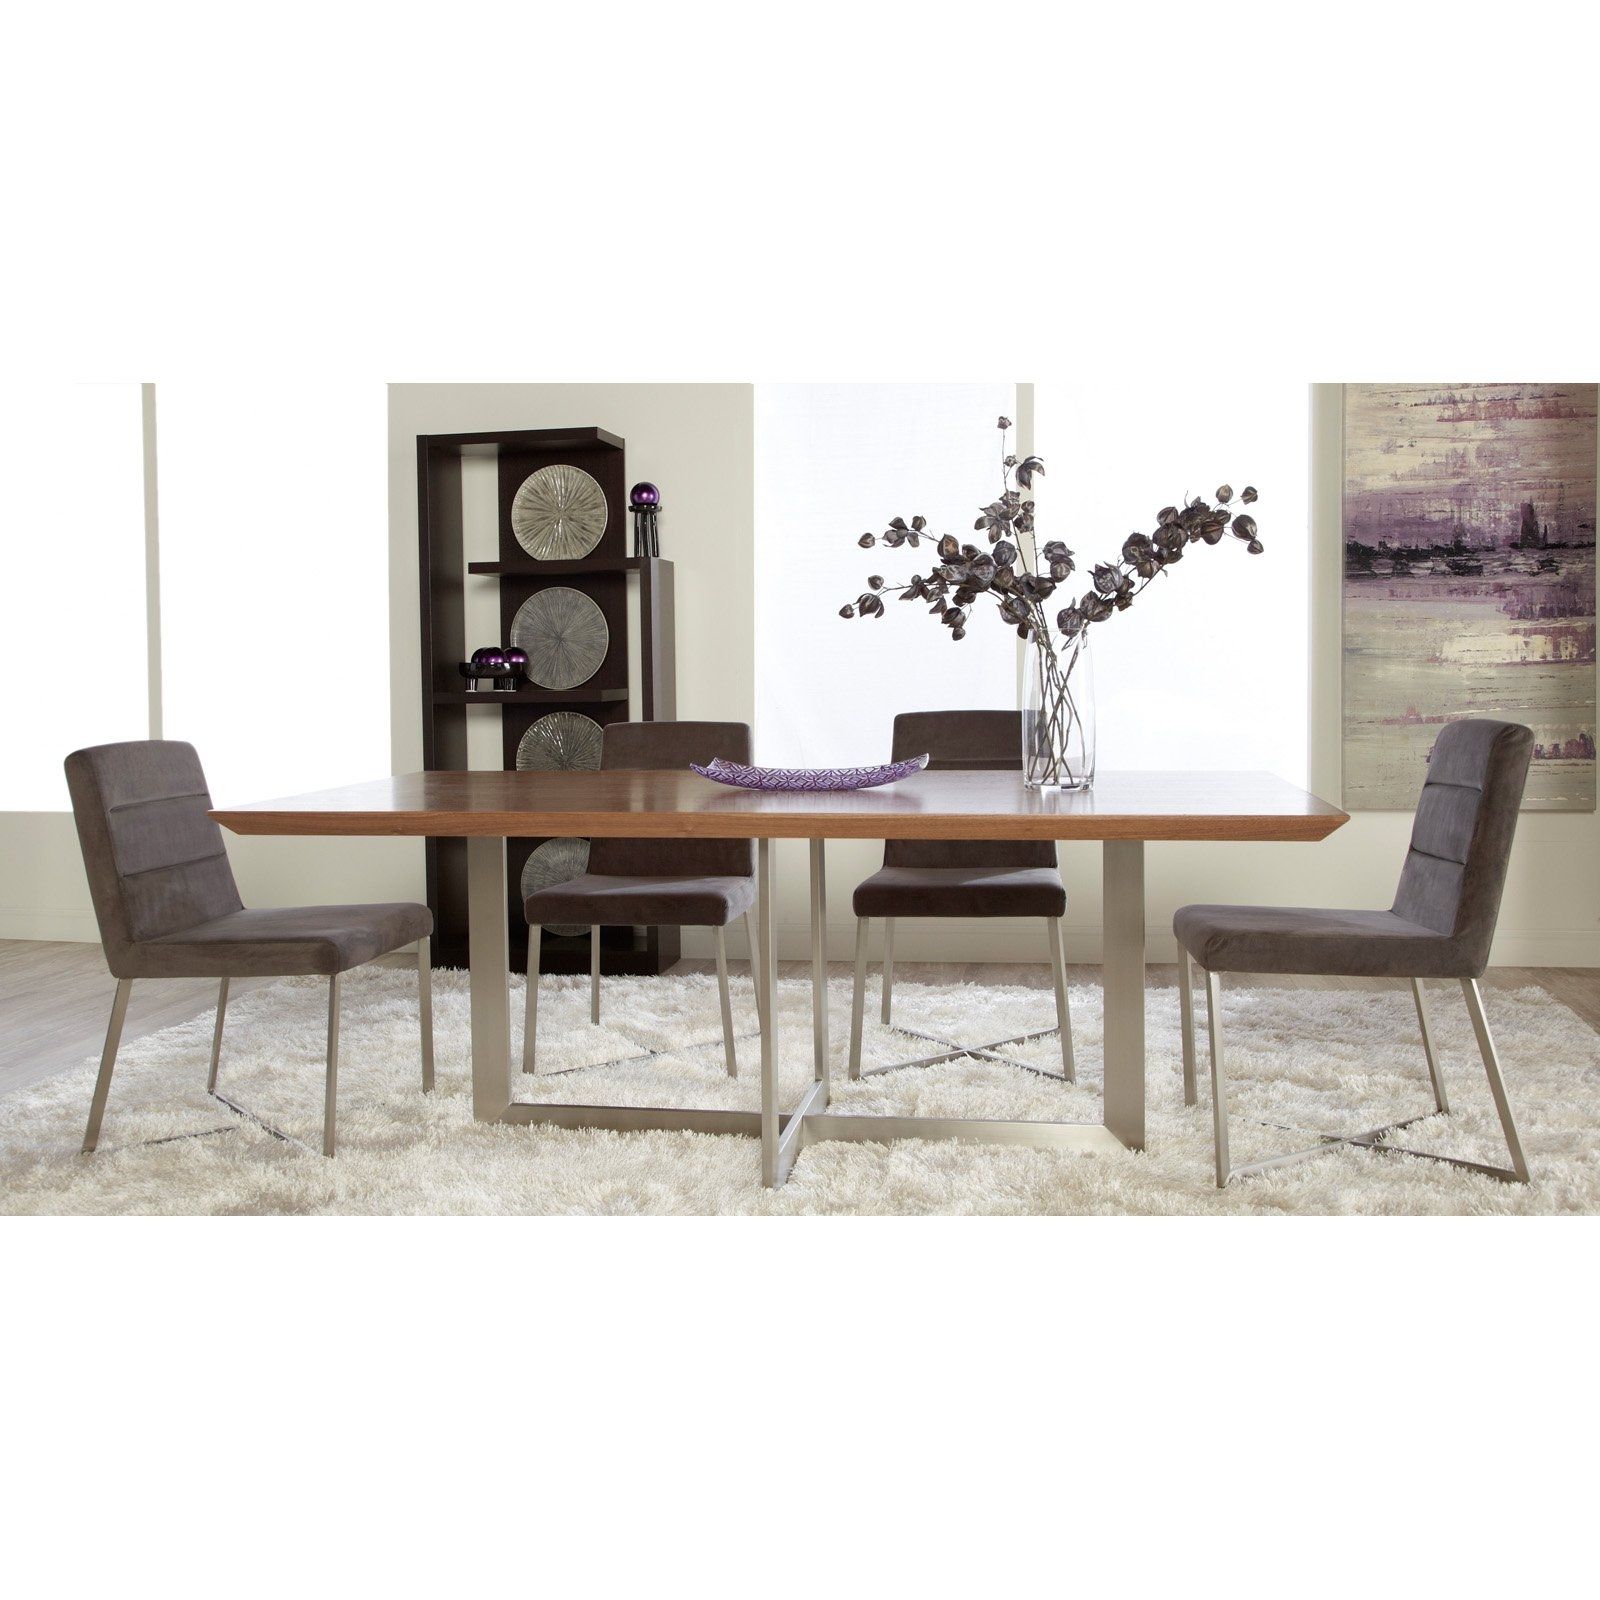 Famous Walnut Dining Tables And Chairs Regarding Euro Style Tosca 5 Piece Walnut Dining Table Set – Tosca Grey Chairs (View 5 of 25)